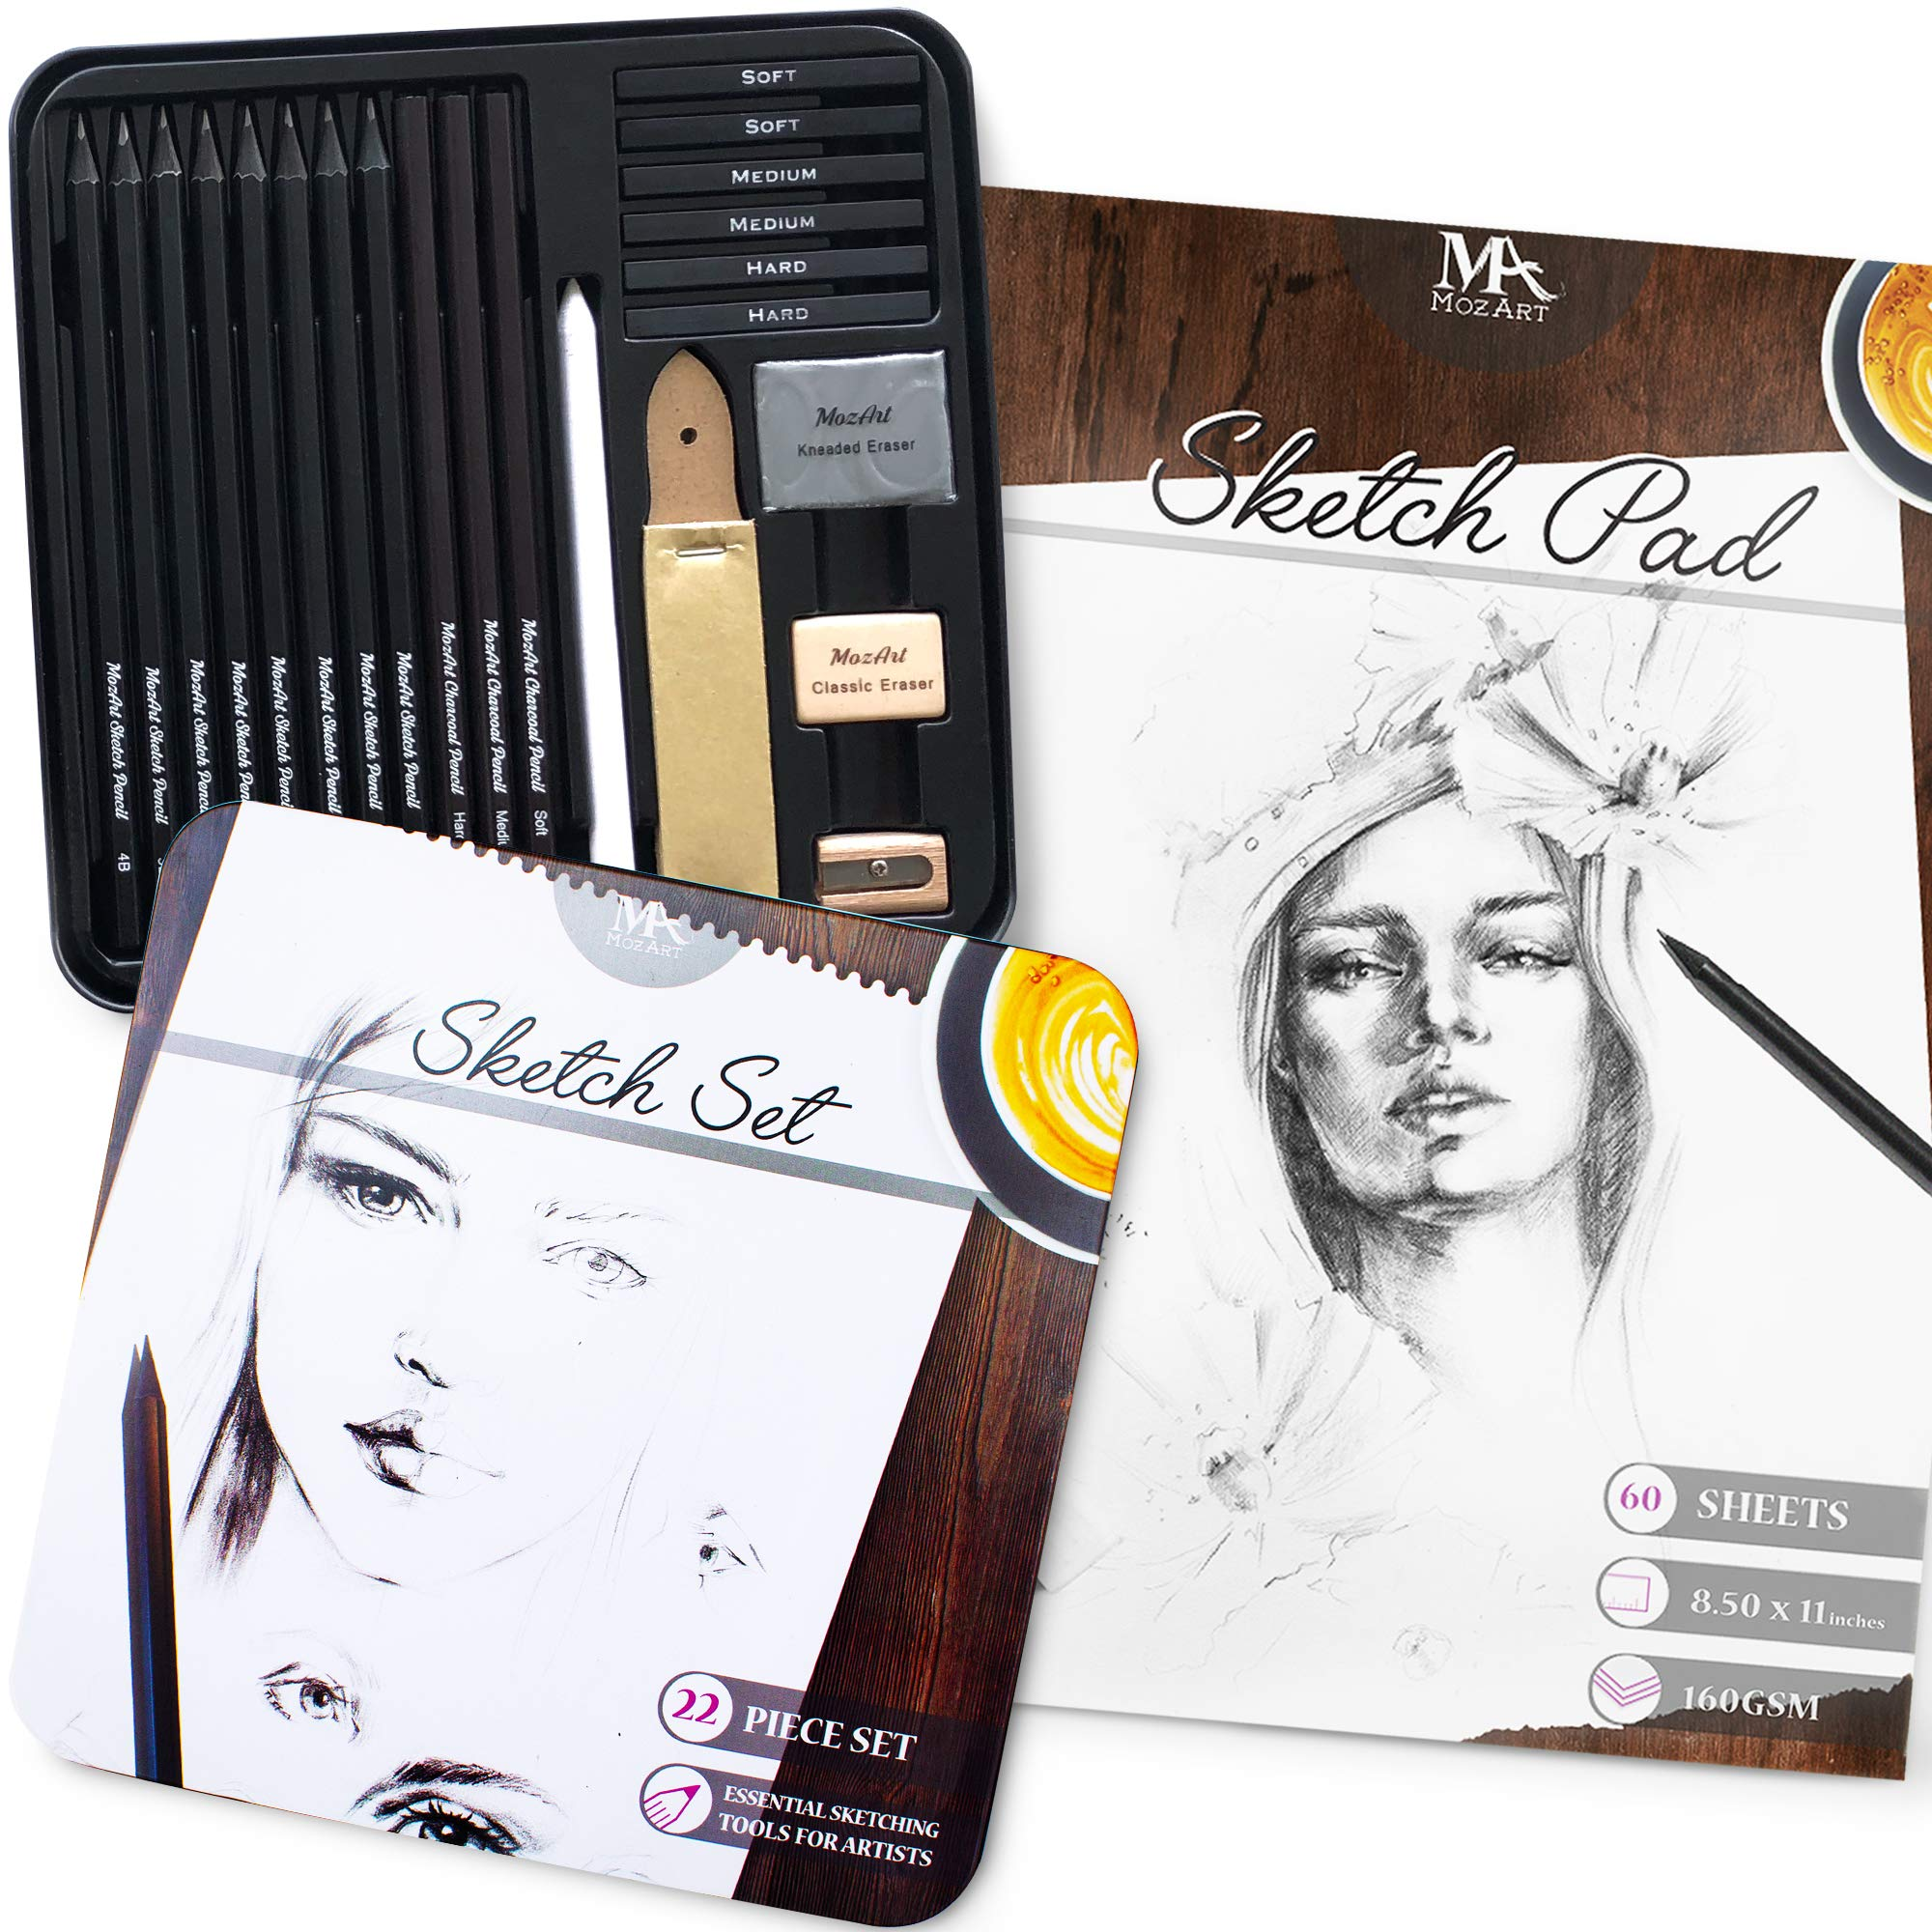 Artists' 22 Piece Complete Essential Sketch Set and 8.5 x 11 inches Sketch Paper, 160 GSM with 60 Sheets - Premium Sketch Art Supplies - Portable for Home, Studio, School- MozArt Supplies by MozArt Supplies